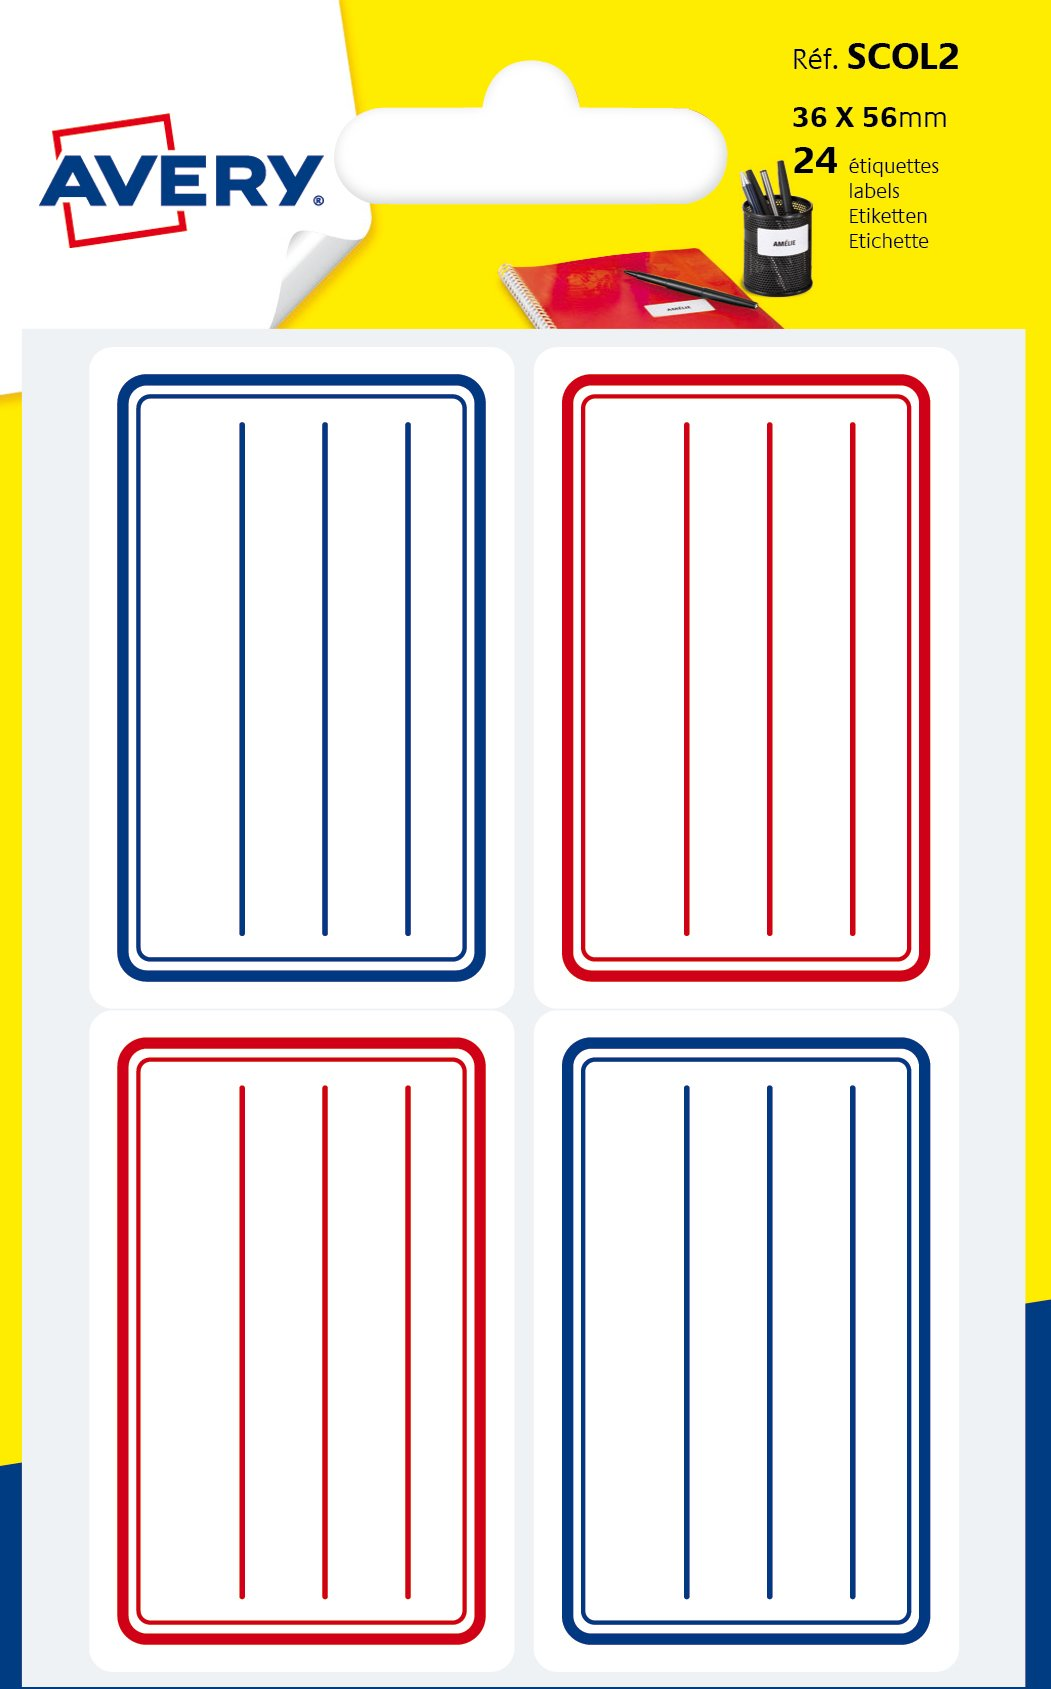 Avery A6Pack of 24School Labels–36x56mm Board–Blue and Red Lines (scol2)